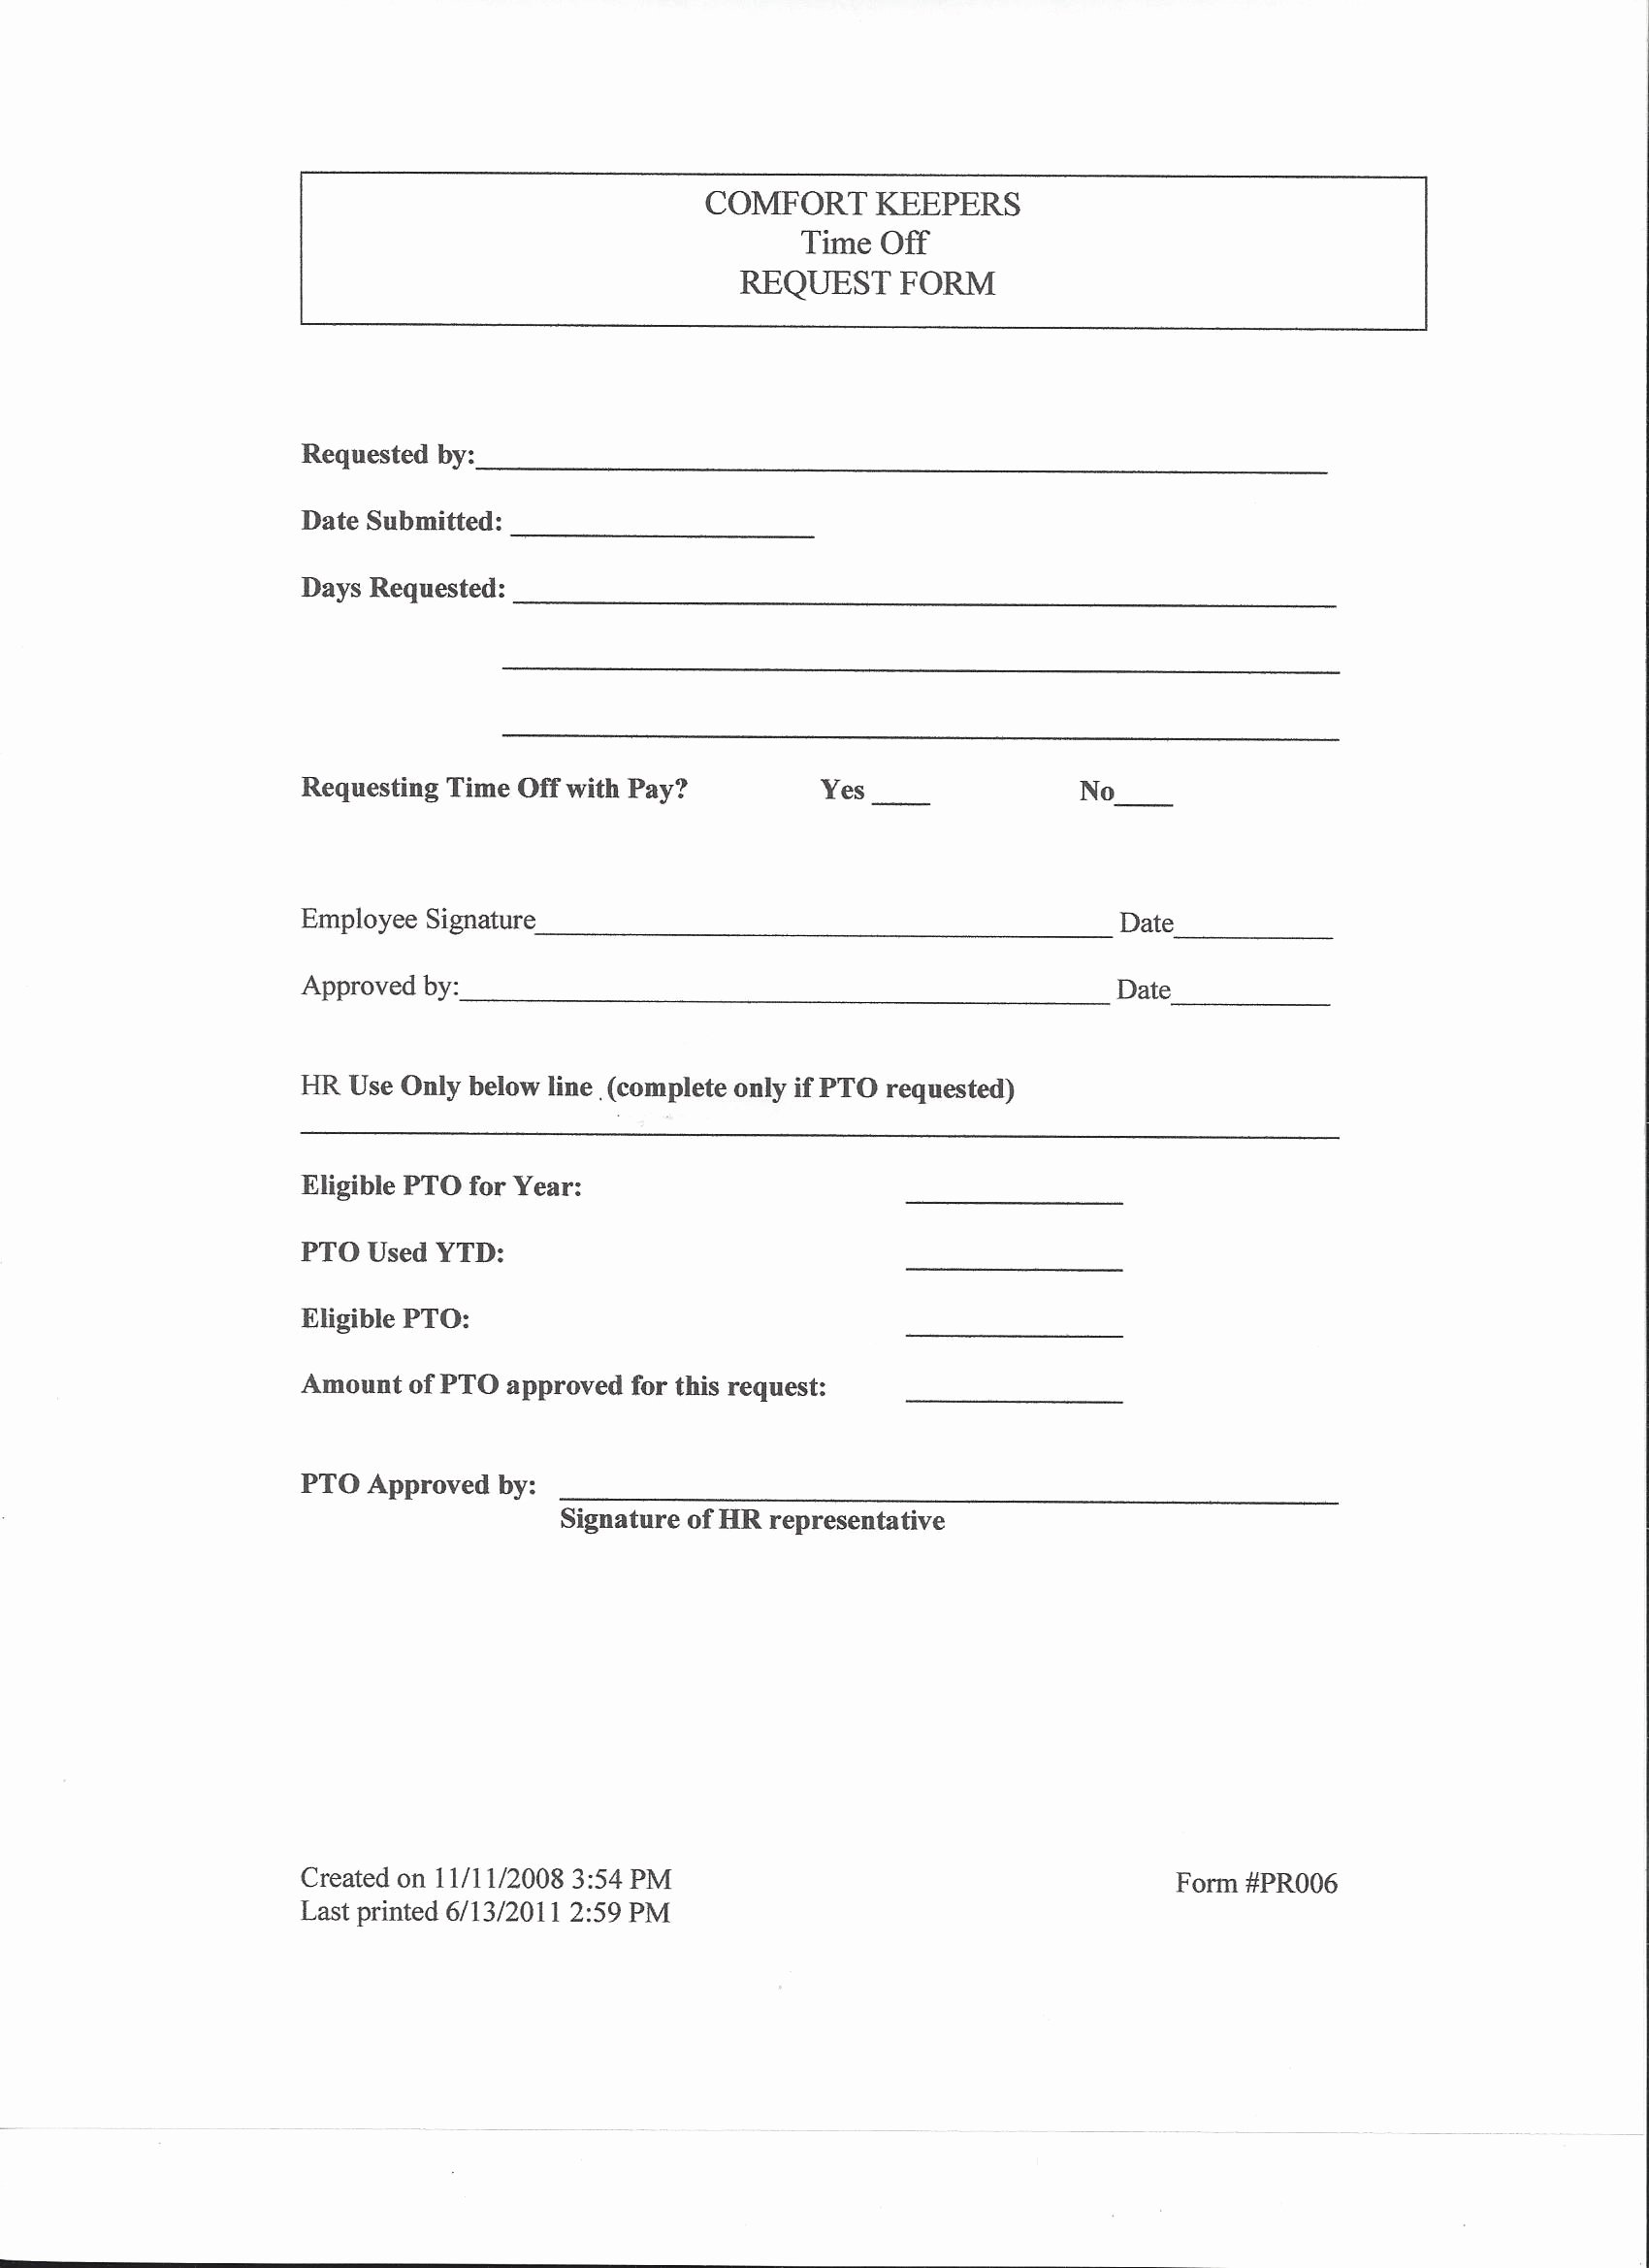 Time Off Request form Templates Beautiful fort Keepers Employee Website